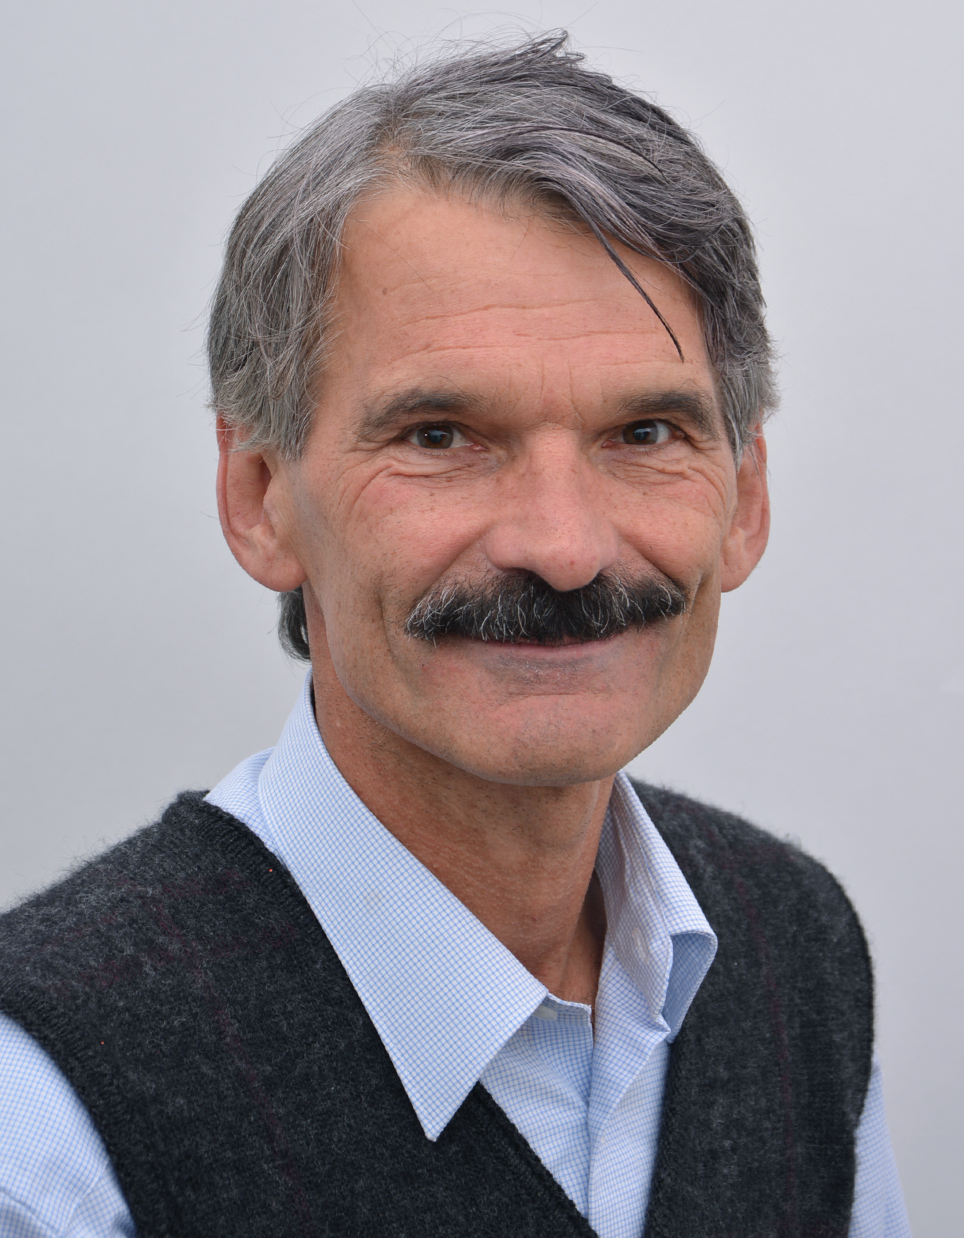 Dipl. Psych. Prof. Dr. phil. Wolfgang George